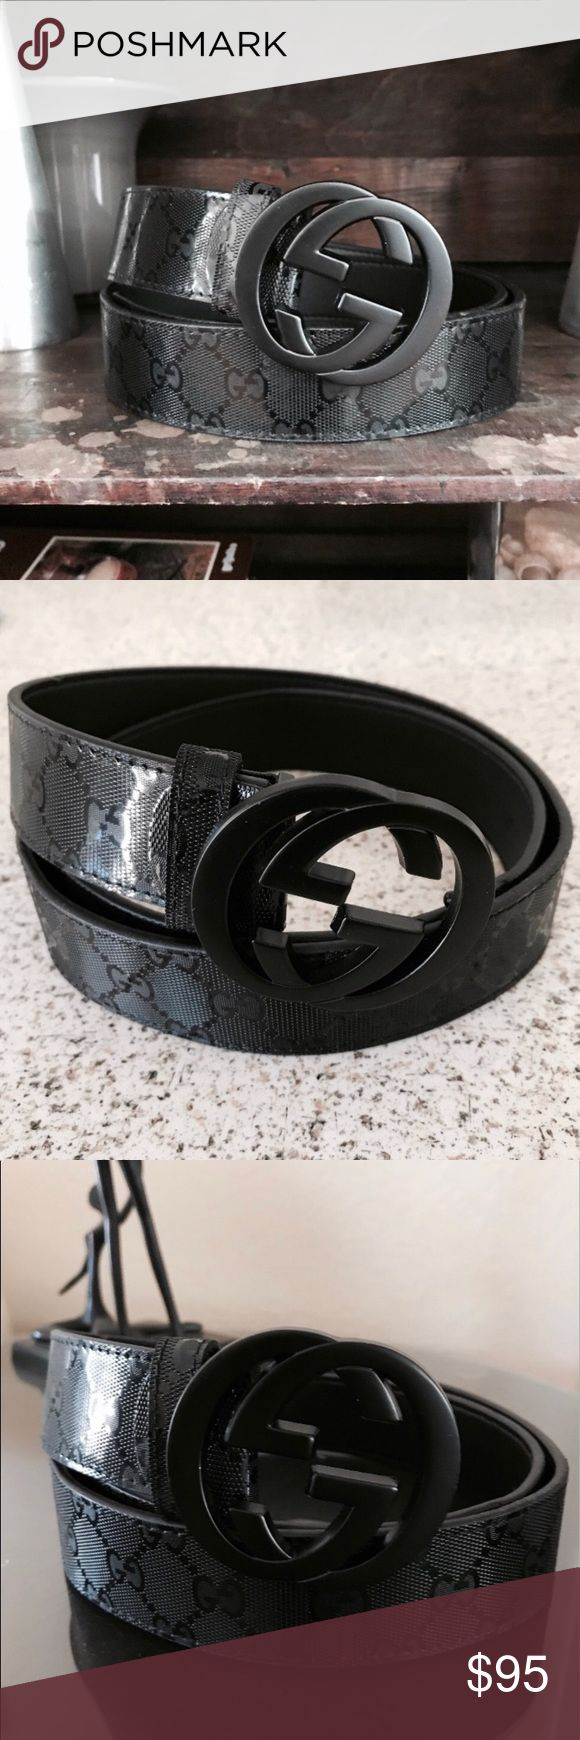 Gucci Belt Mens Gucci belt ua mens size 34-34, item is new, you can always cut it to make it smaller Gucci Accessories Belts